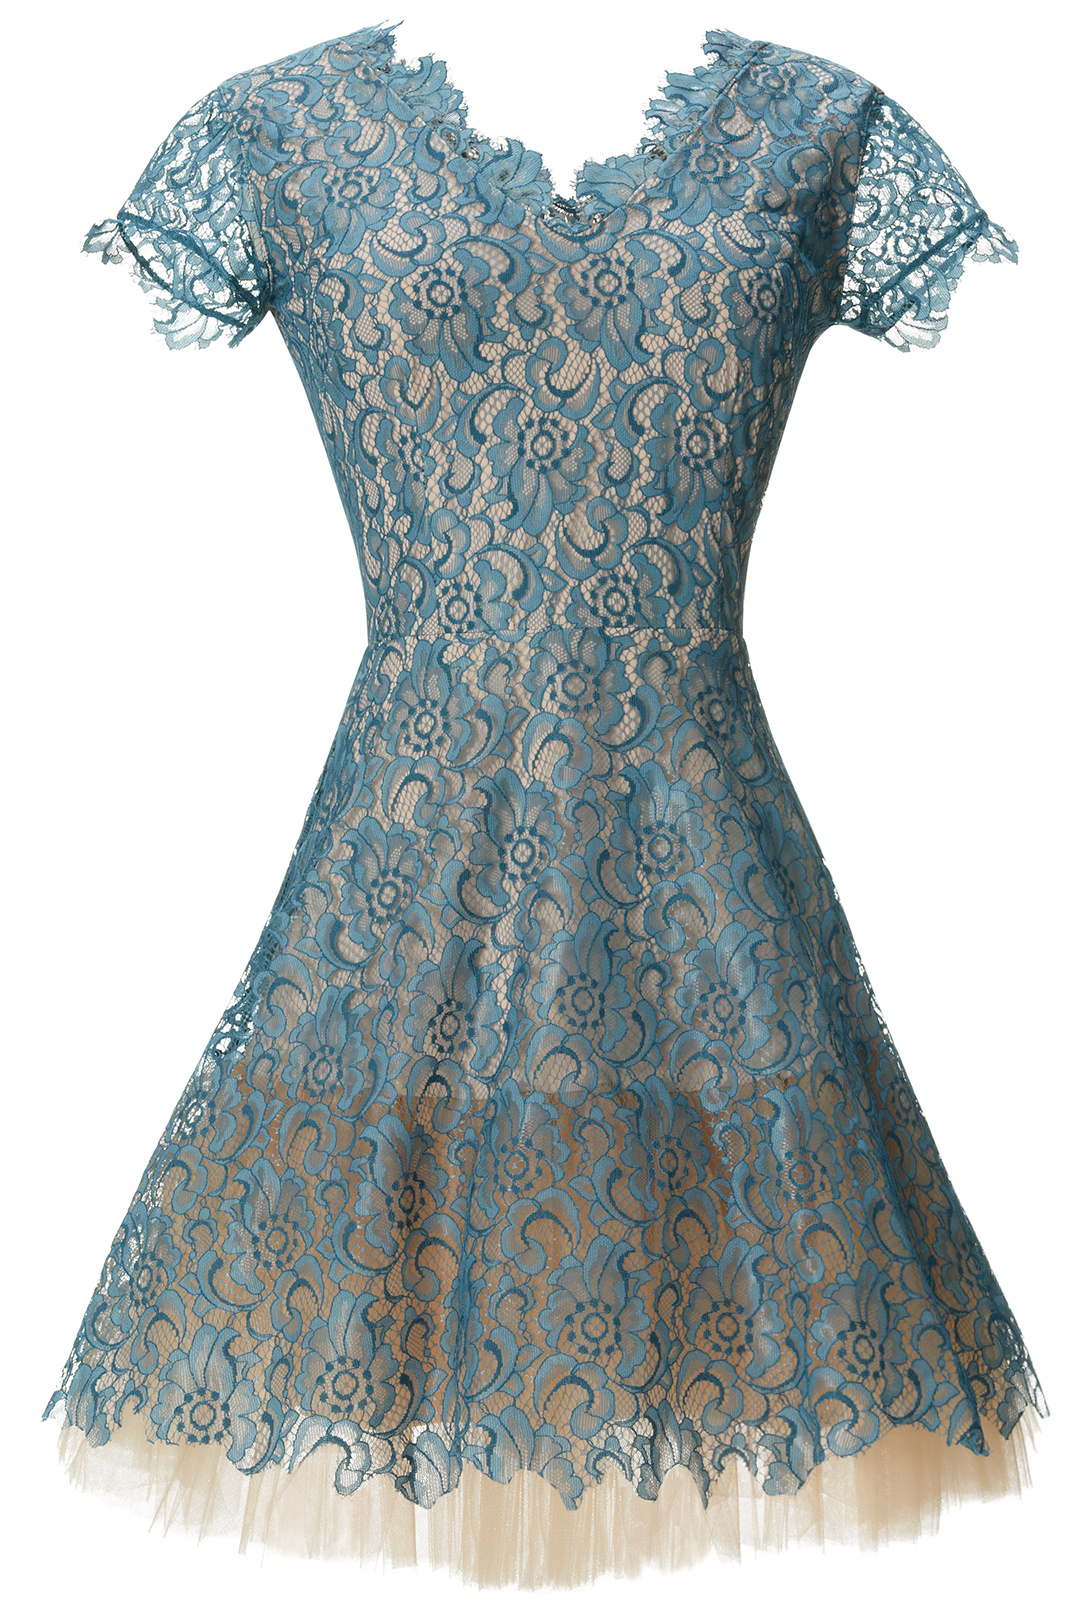 Nha khanh bluee Teal Floral-Lace Women's Size 2 Illusion A-Line Dress  595-